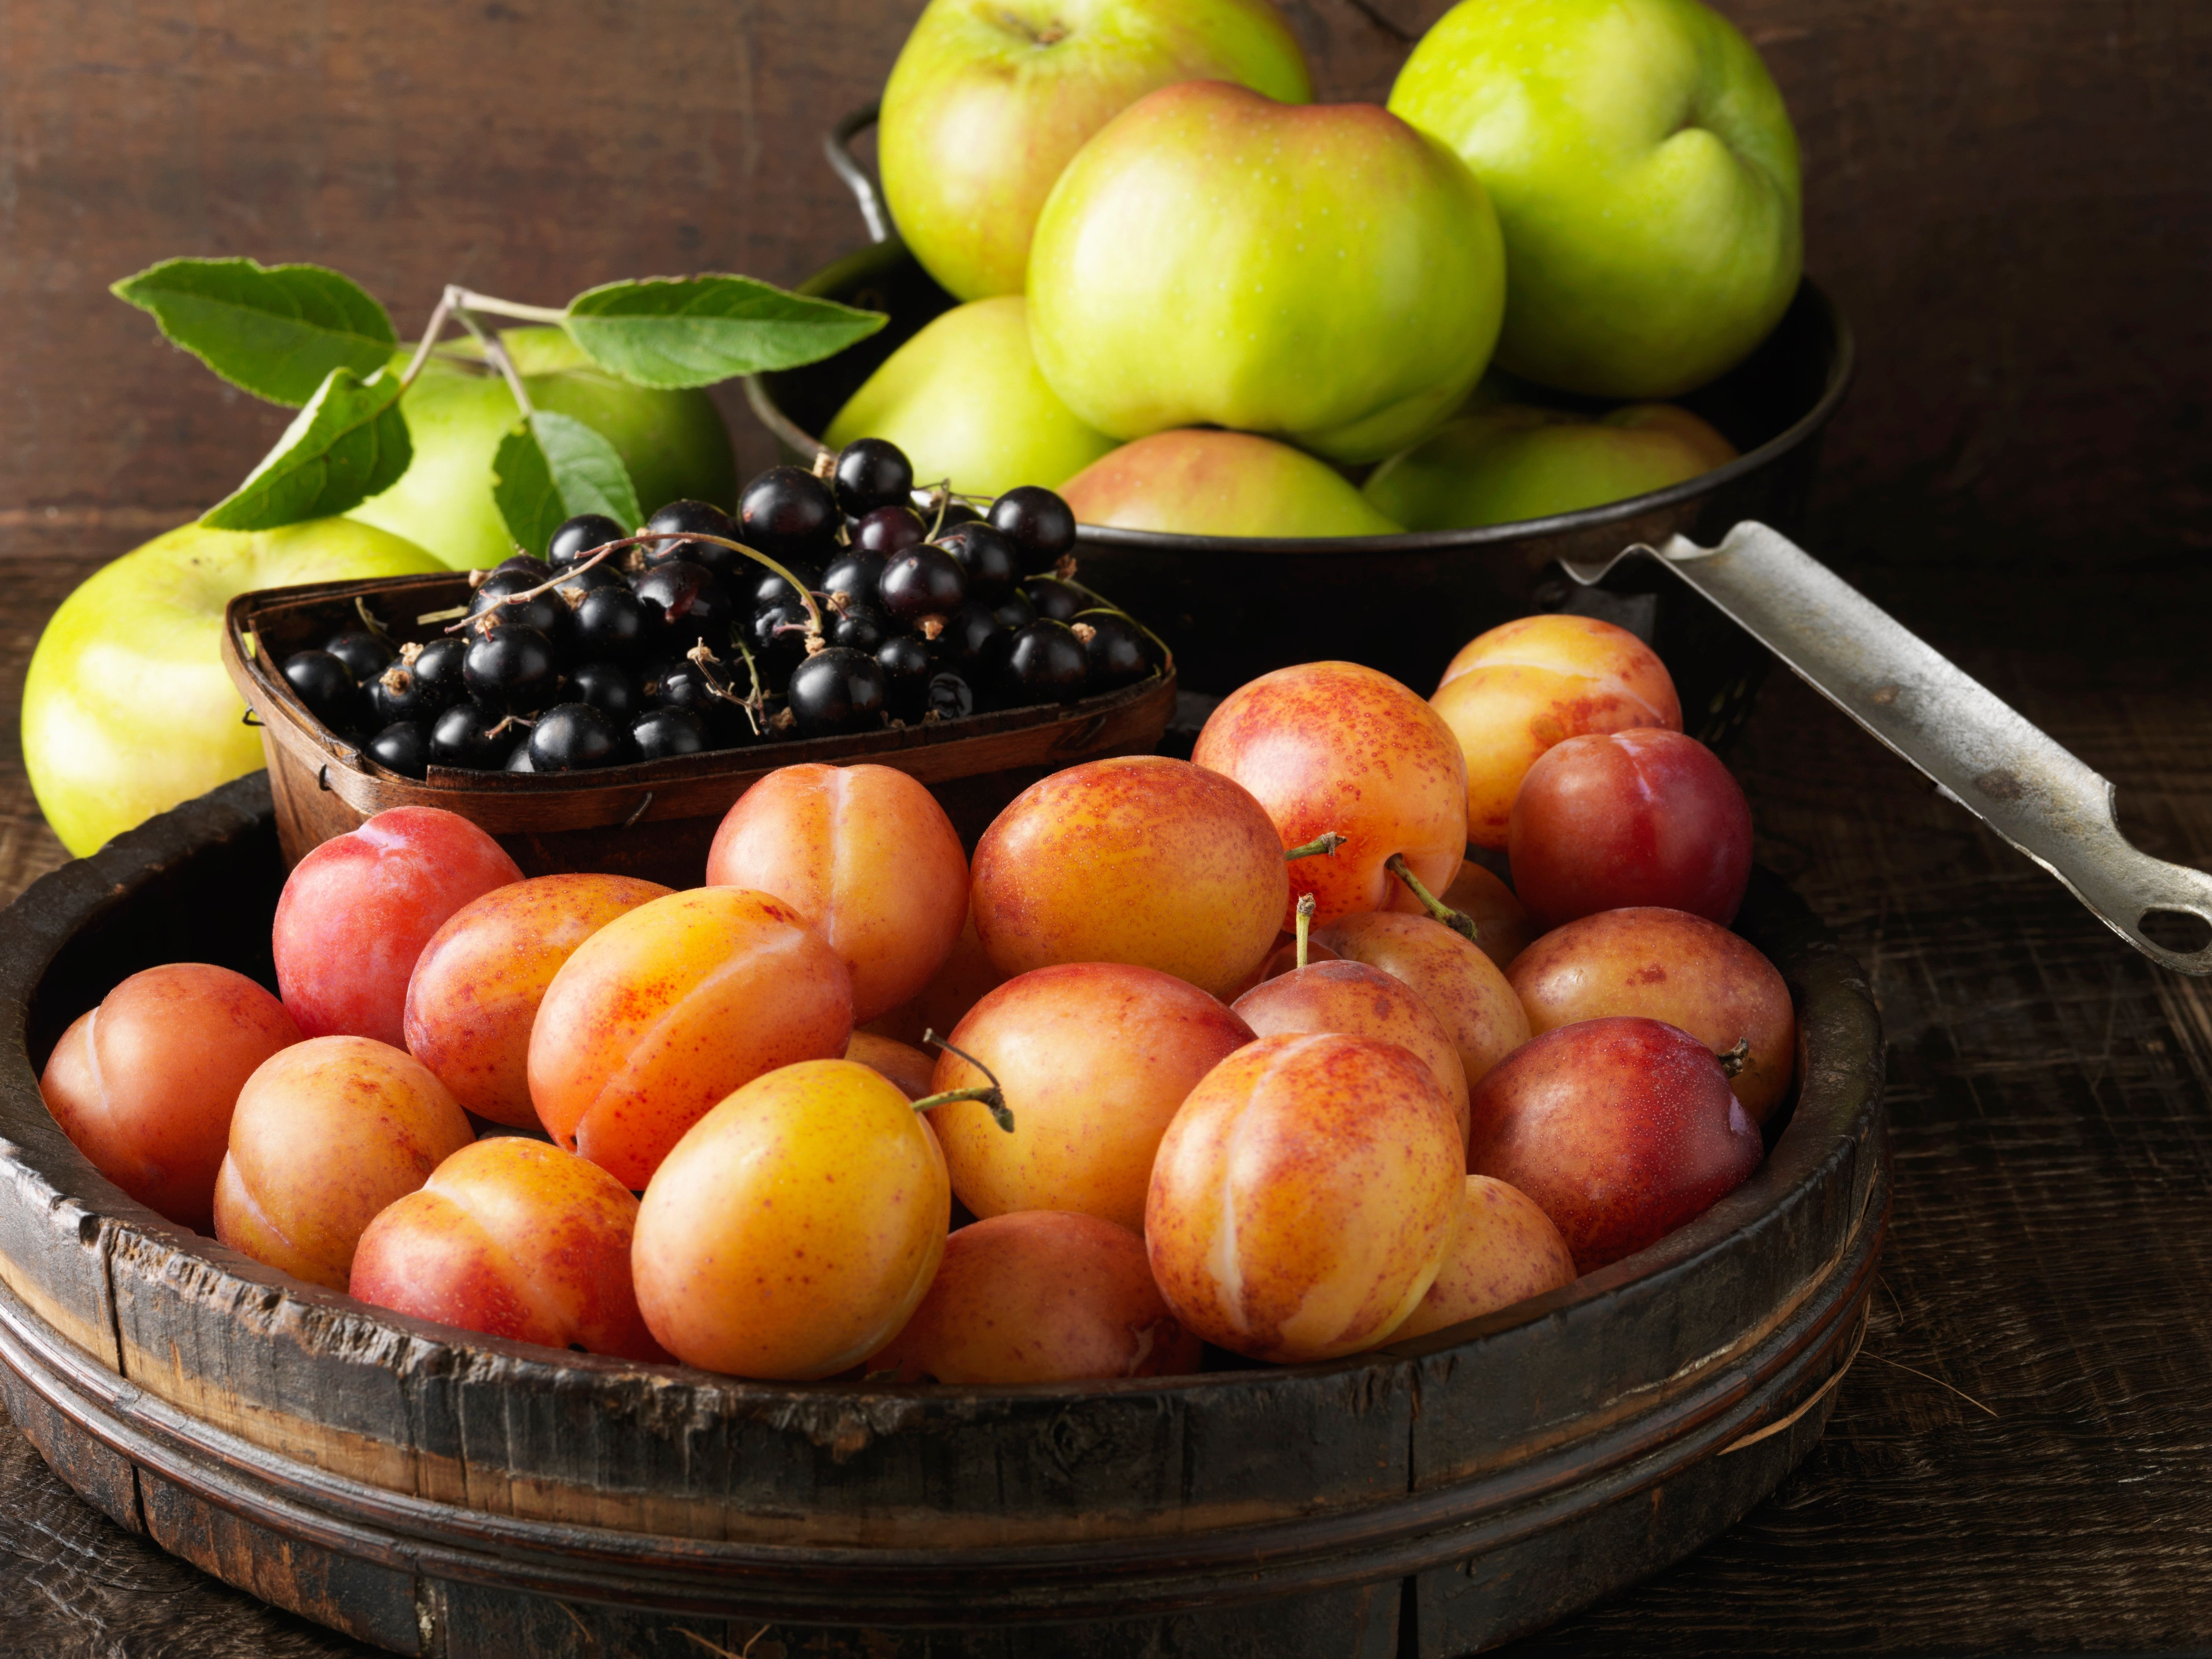 Apples, cherries, and nectarines arranged on wooden surface